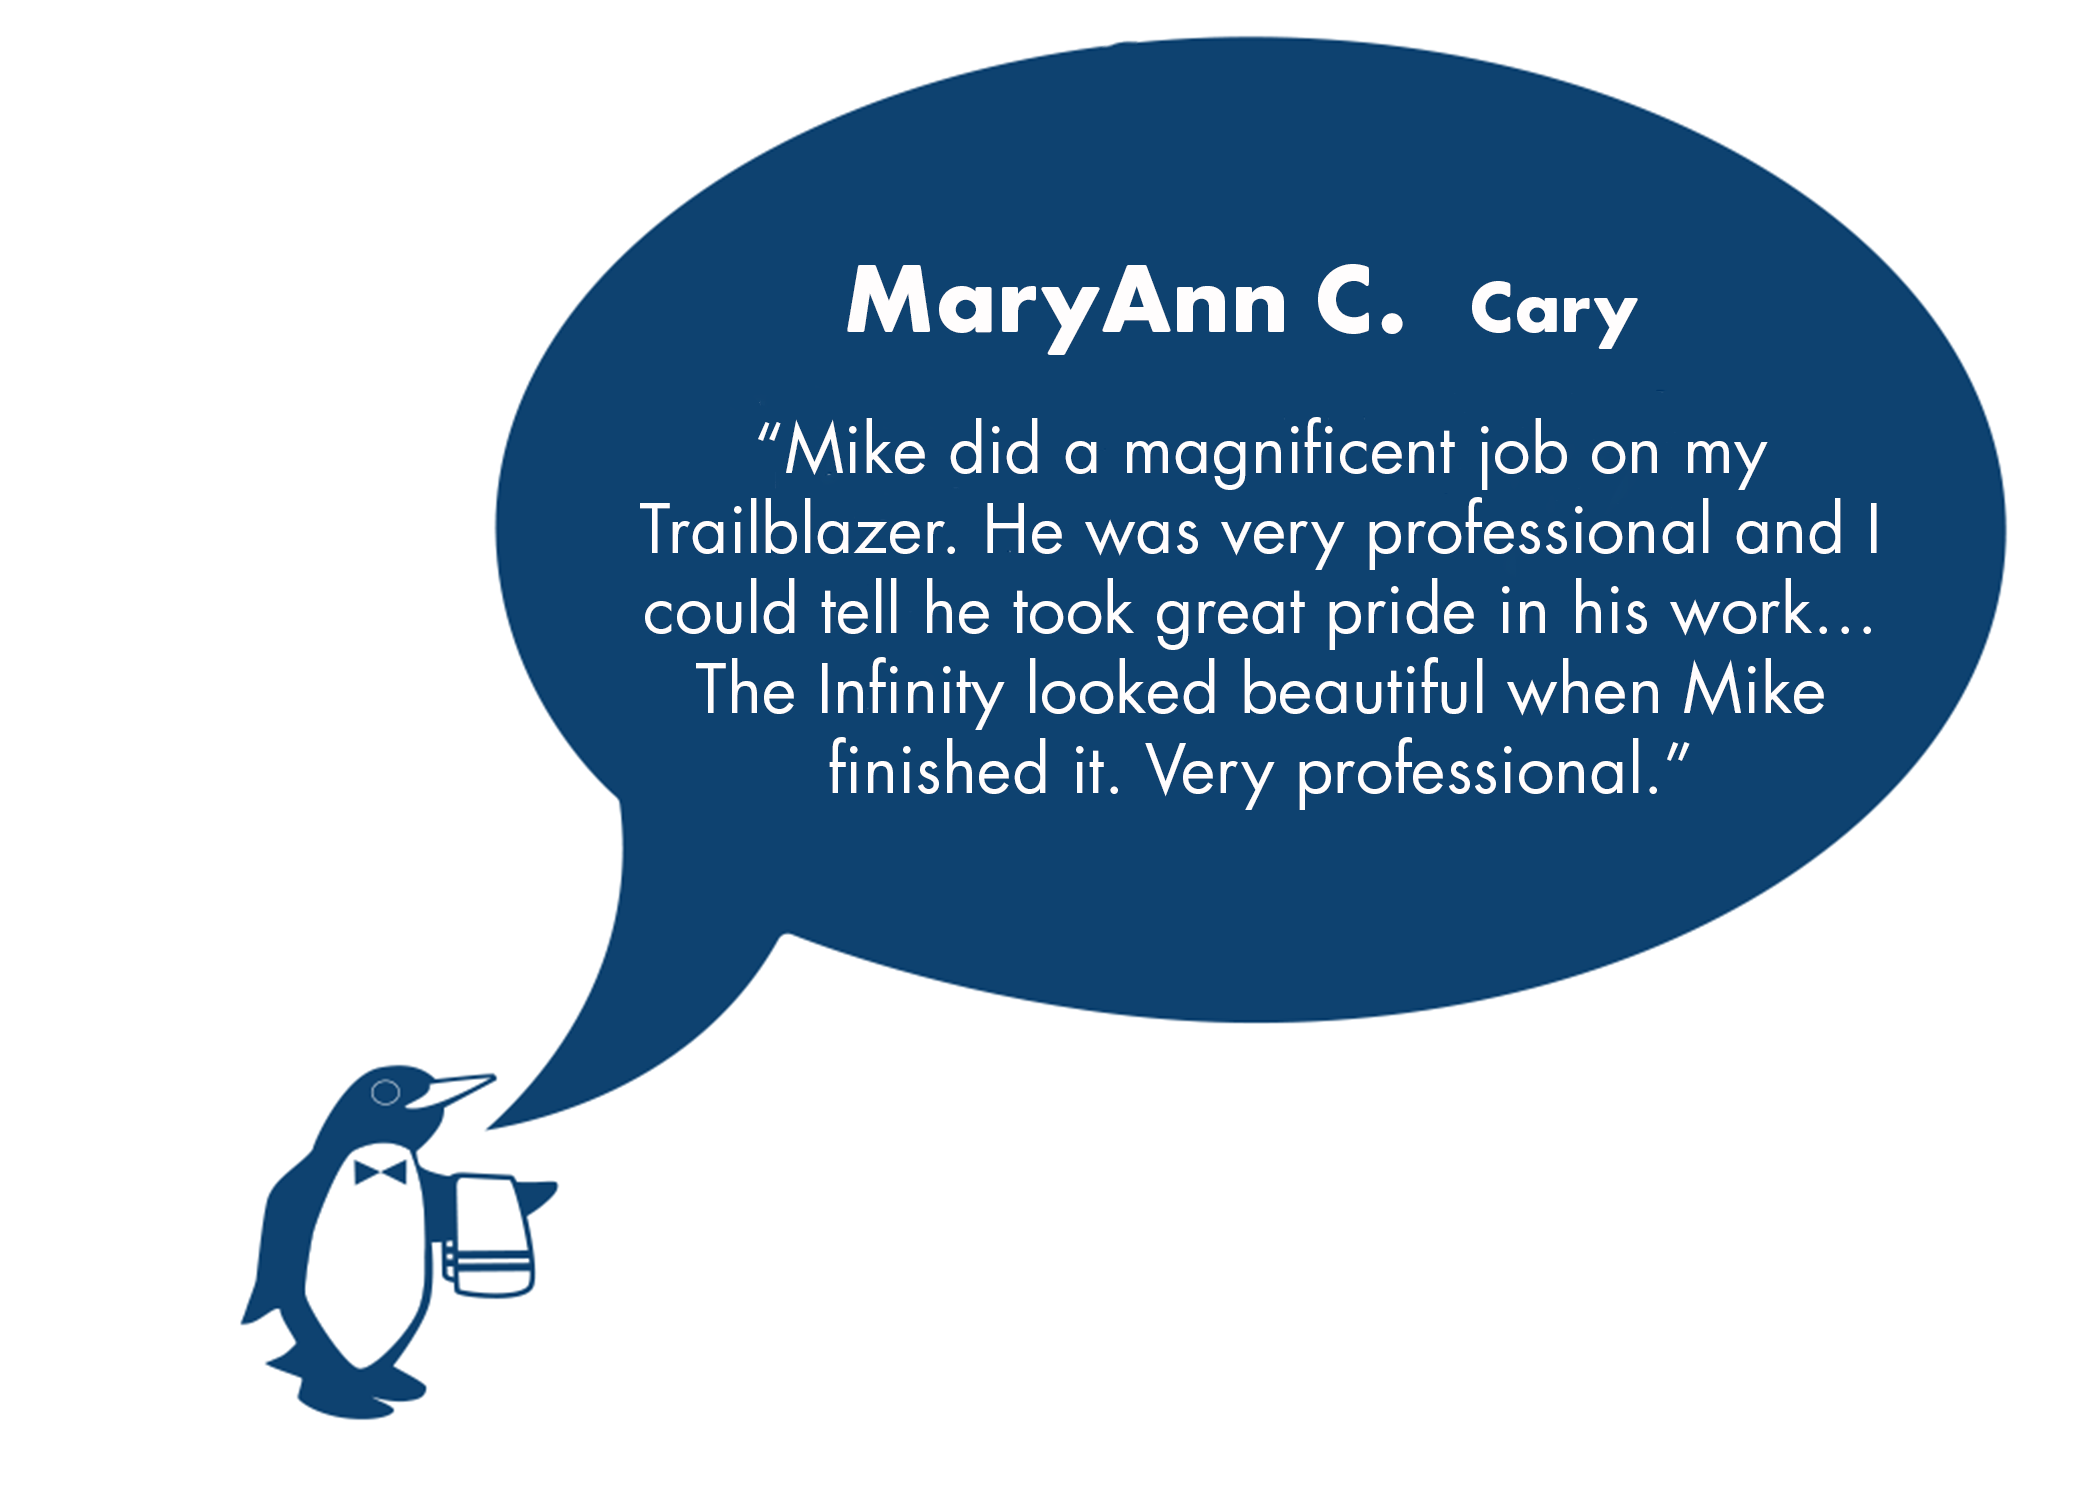 MaryAnn Review June Cary, NC